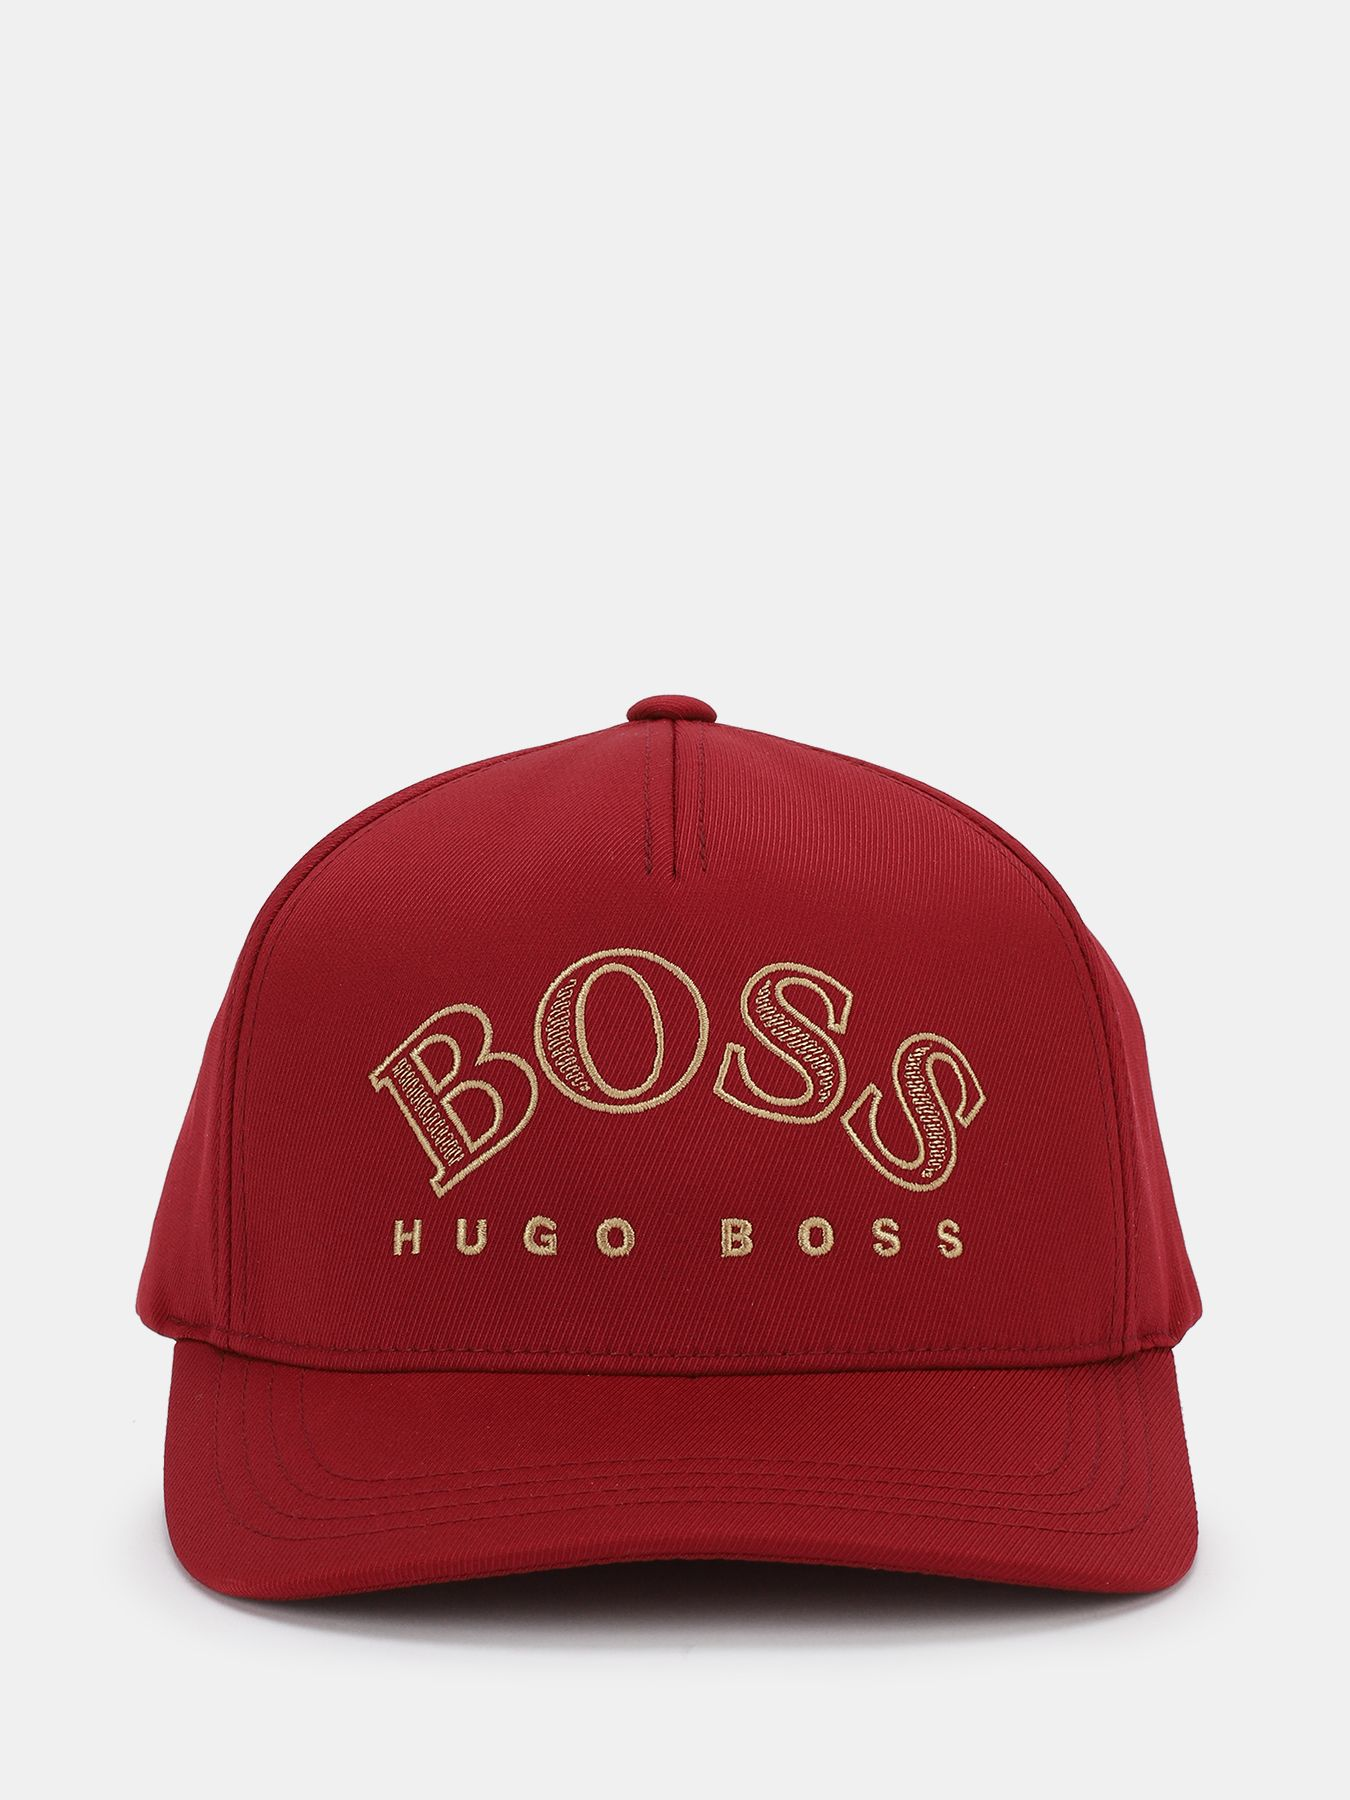 Бейсболка BOSS Cap Curved